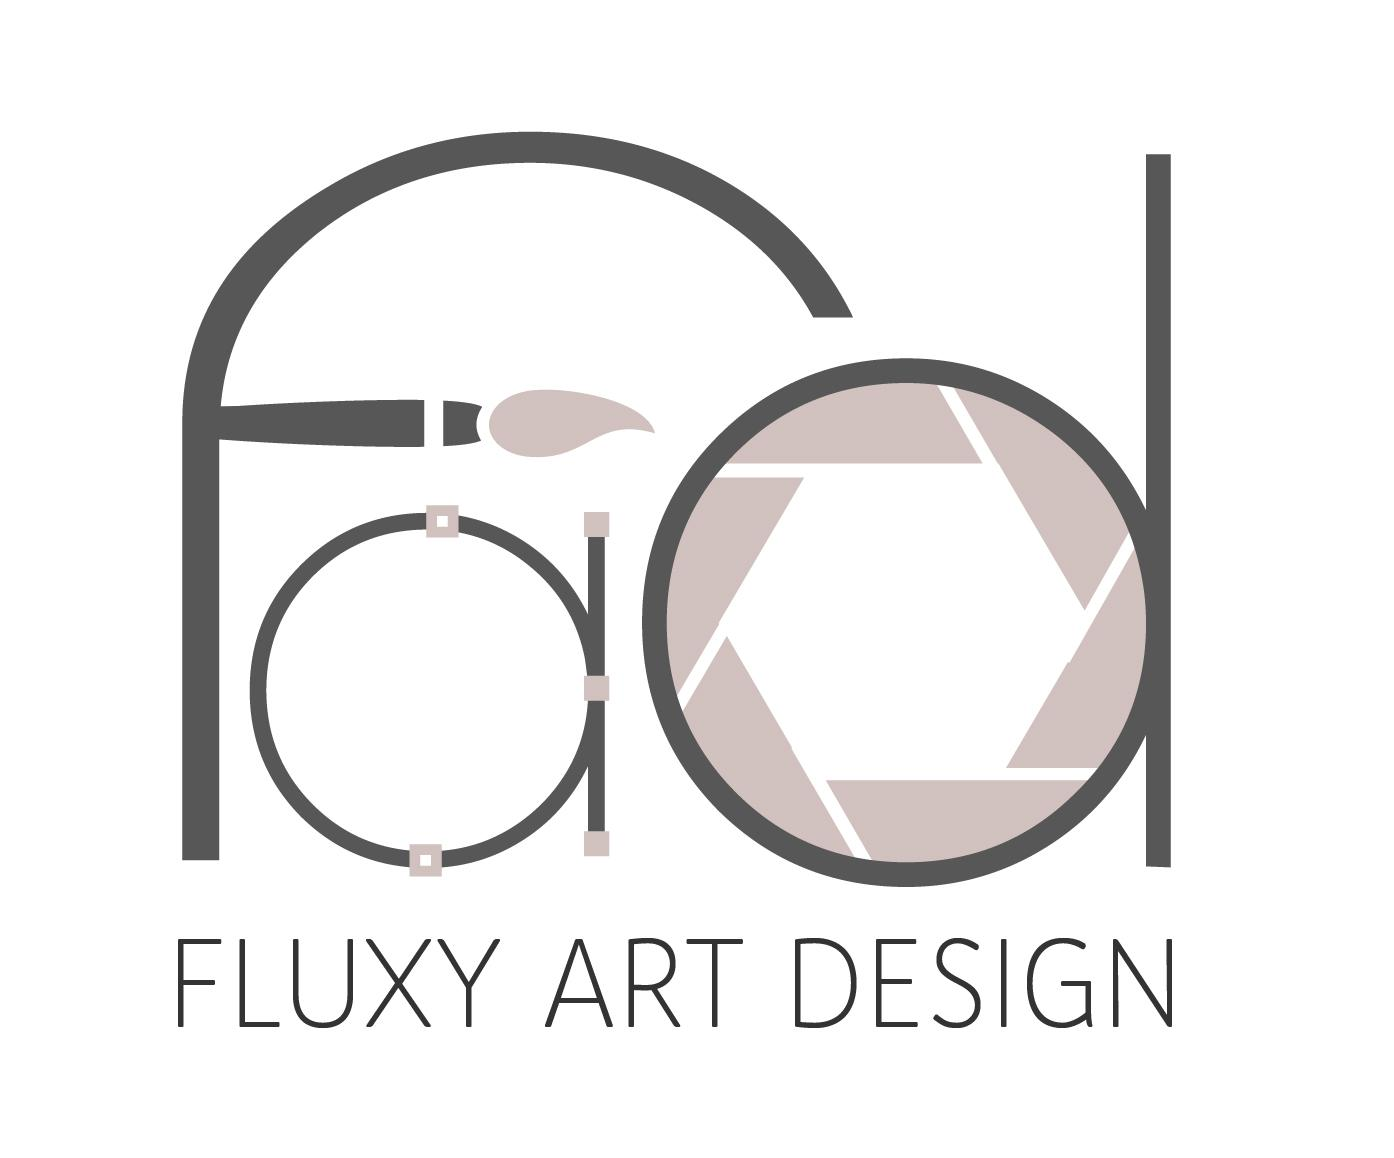 Fluxy Art Design Logo